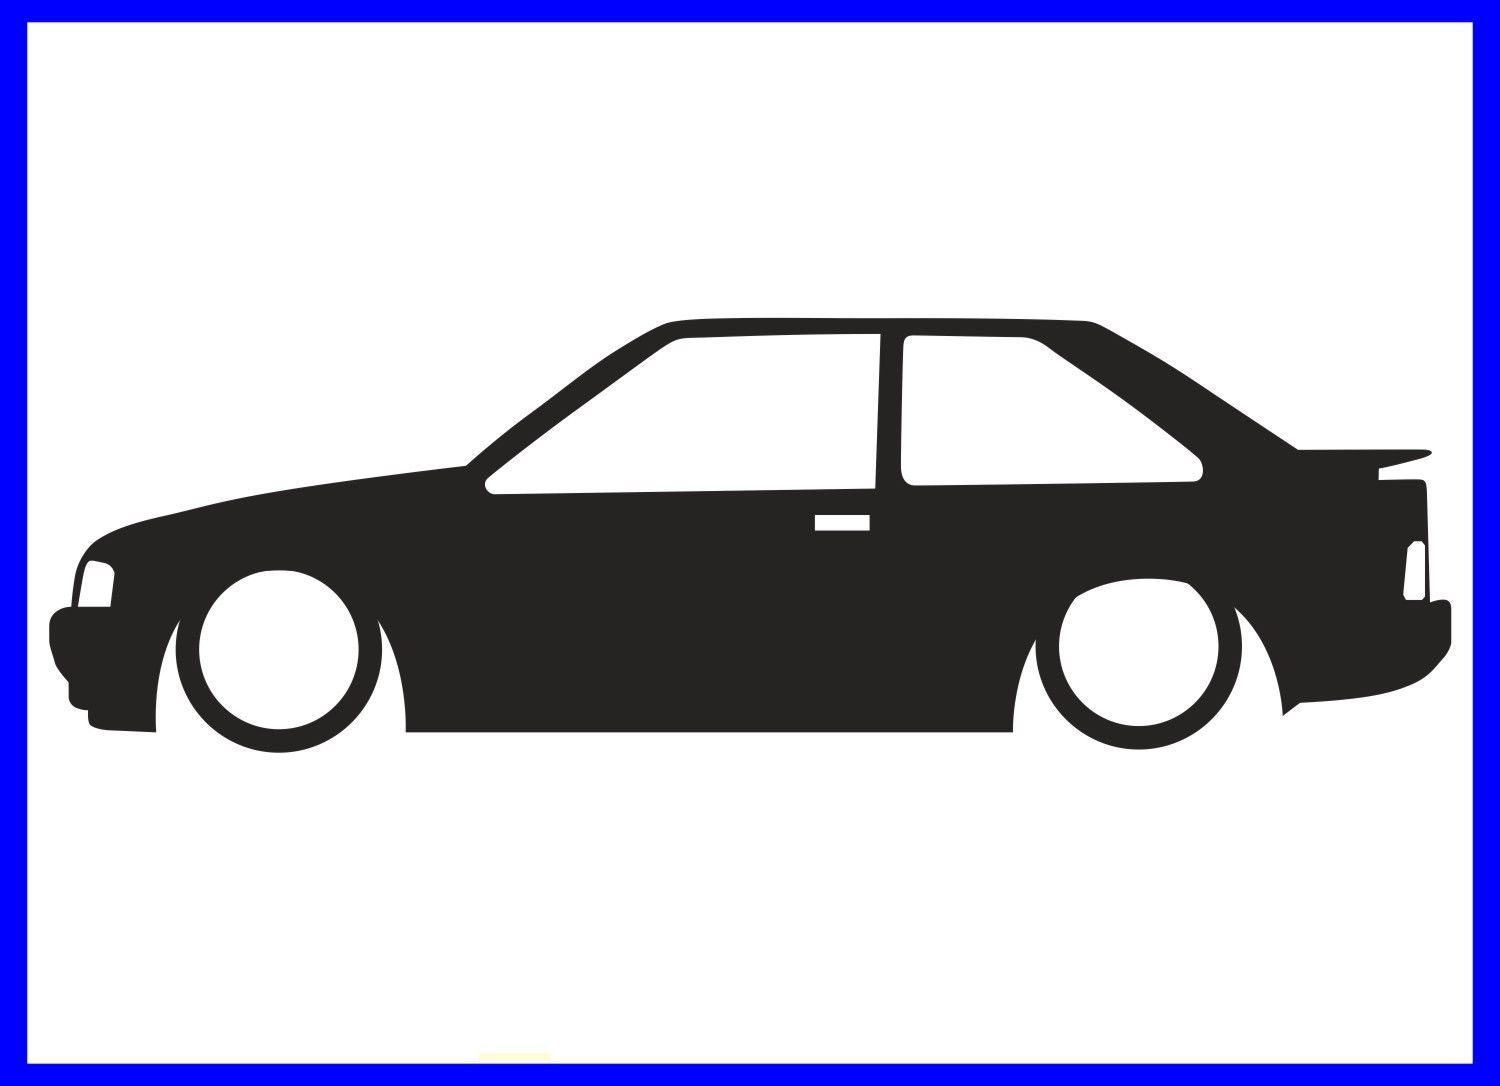 1500x1086 1x Low Ford Escort Mk4 Rs Turbo Xr3i Outline Silhouette Sticker